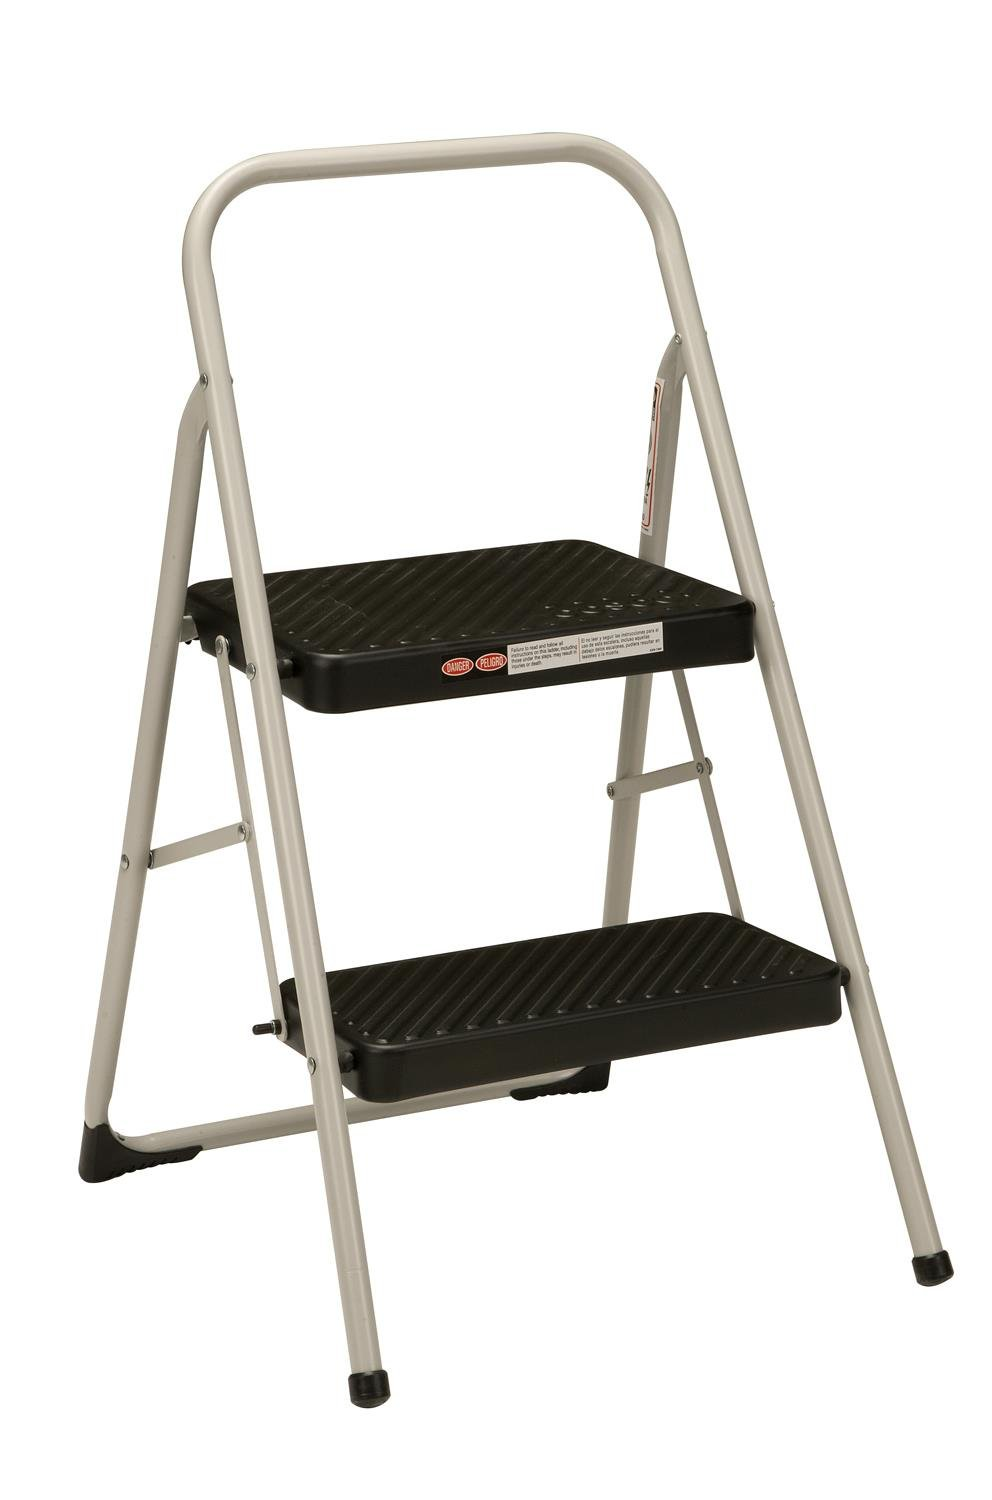 Cosco 2-Step Household Folding Step Stool, Gray by Cosco